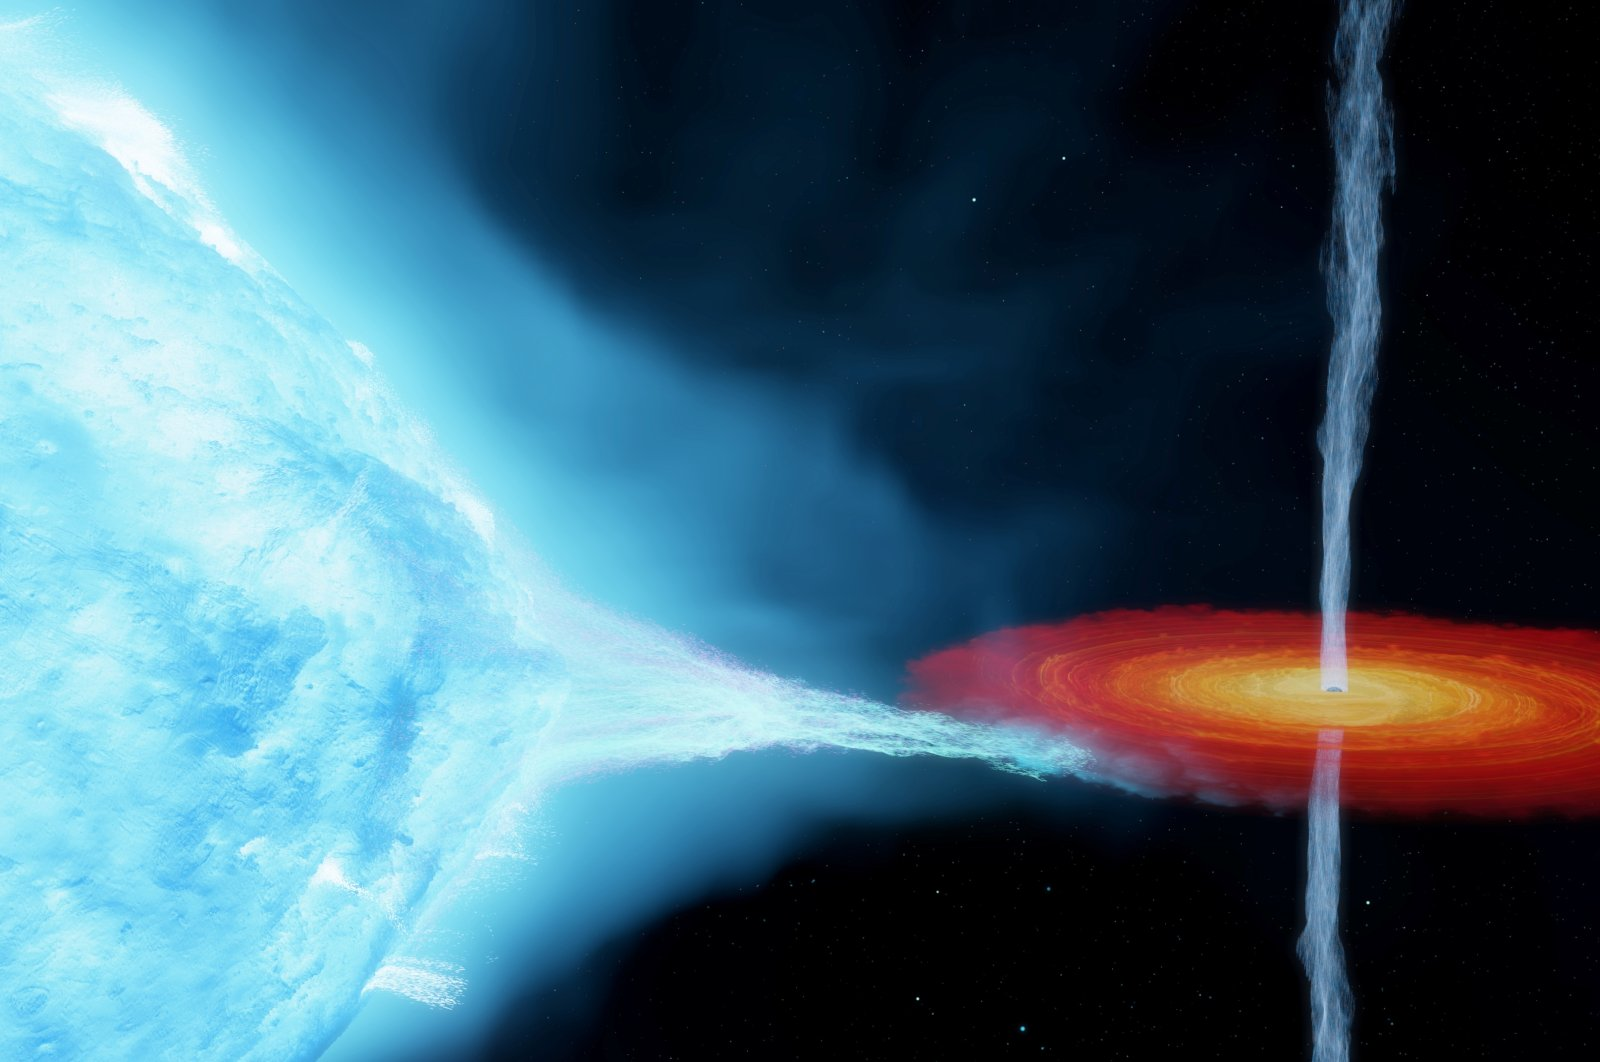 An artist's impression of the Cygnus X-1 system, with a so-called stellar-mass black hole orbiting a companion star some 7,200 light-years from Earth.  (International Centre for Radio Astronomy Research via Reuters)